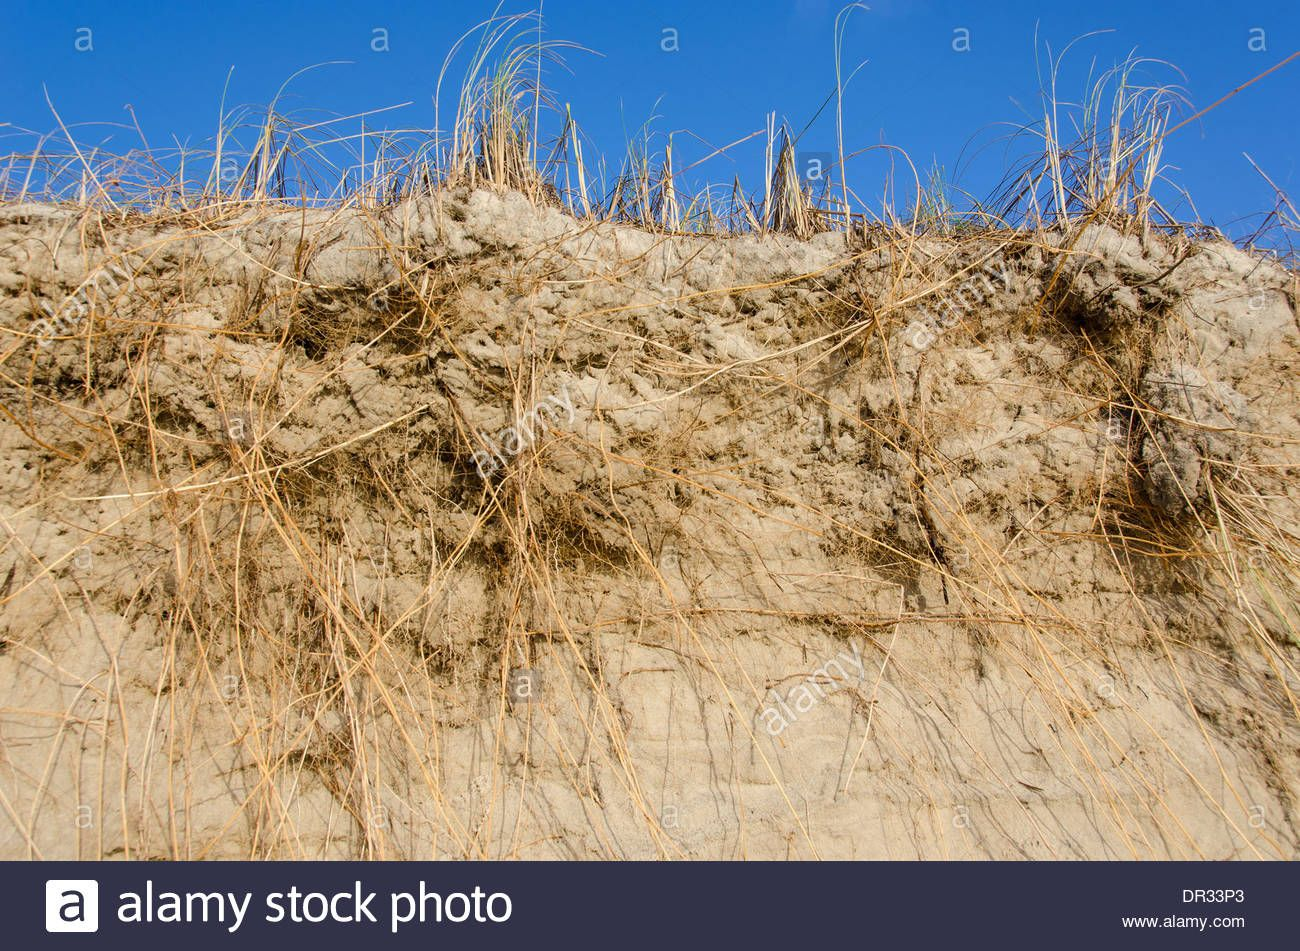 Marram Grass, Ammophila And Their Root System As Seen From Below Stock Photo, Royalty Free Image: 65837019 - Alamy